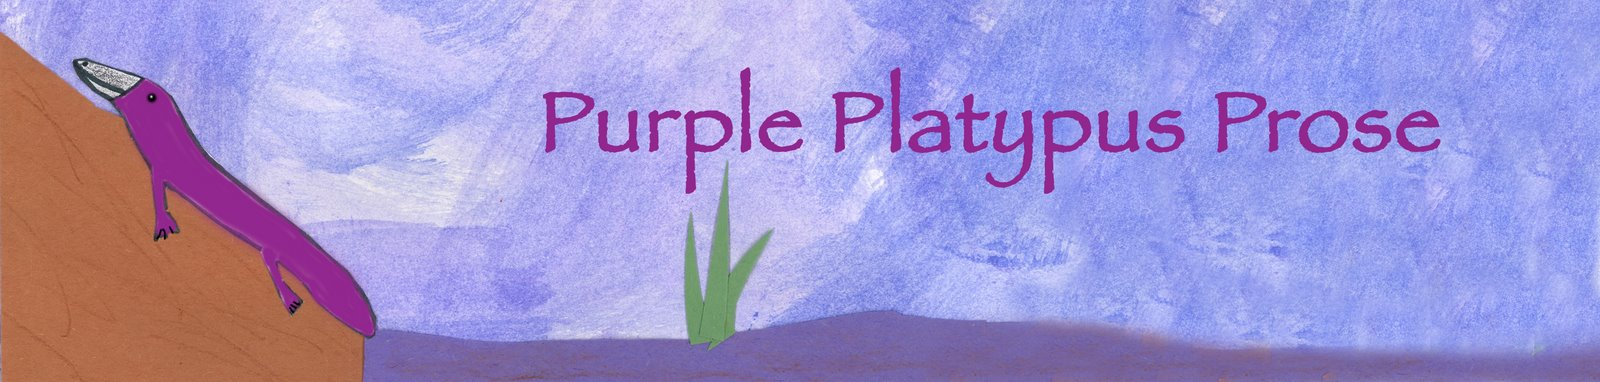 Purple Platypus Prose